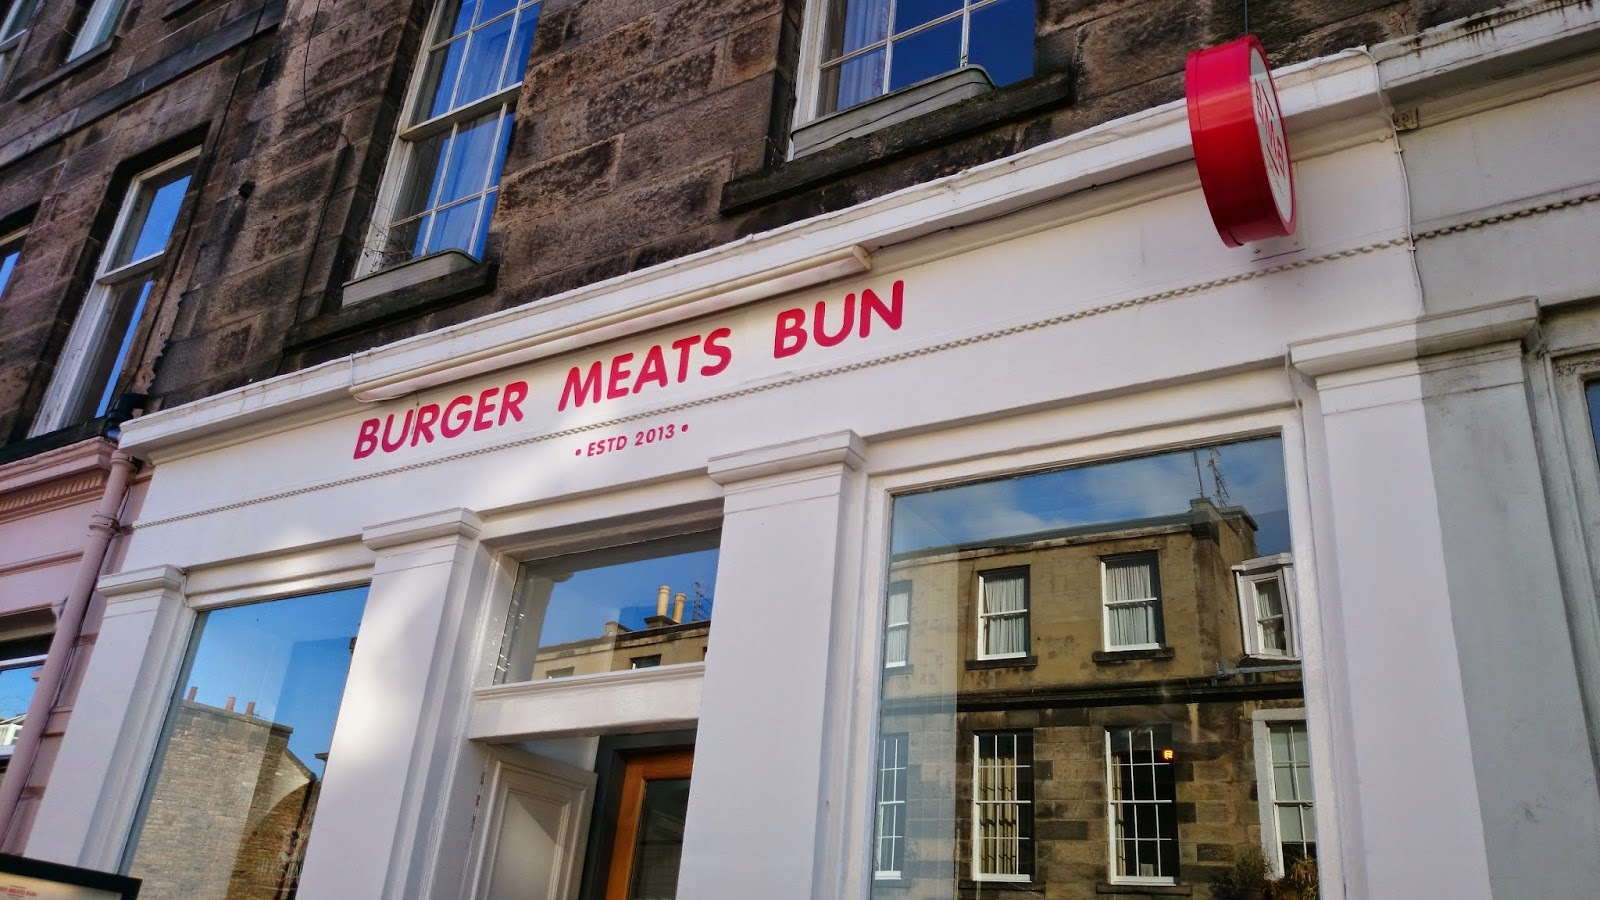 Review: Burger Meats Bun, Edinburgh